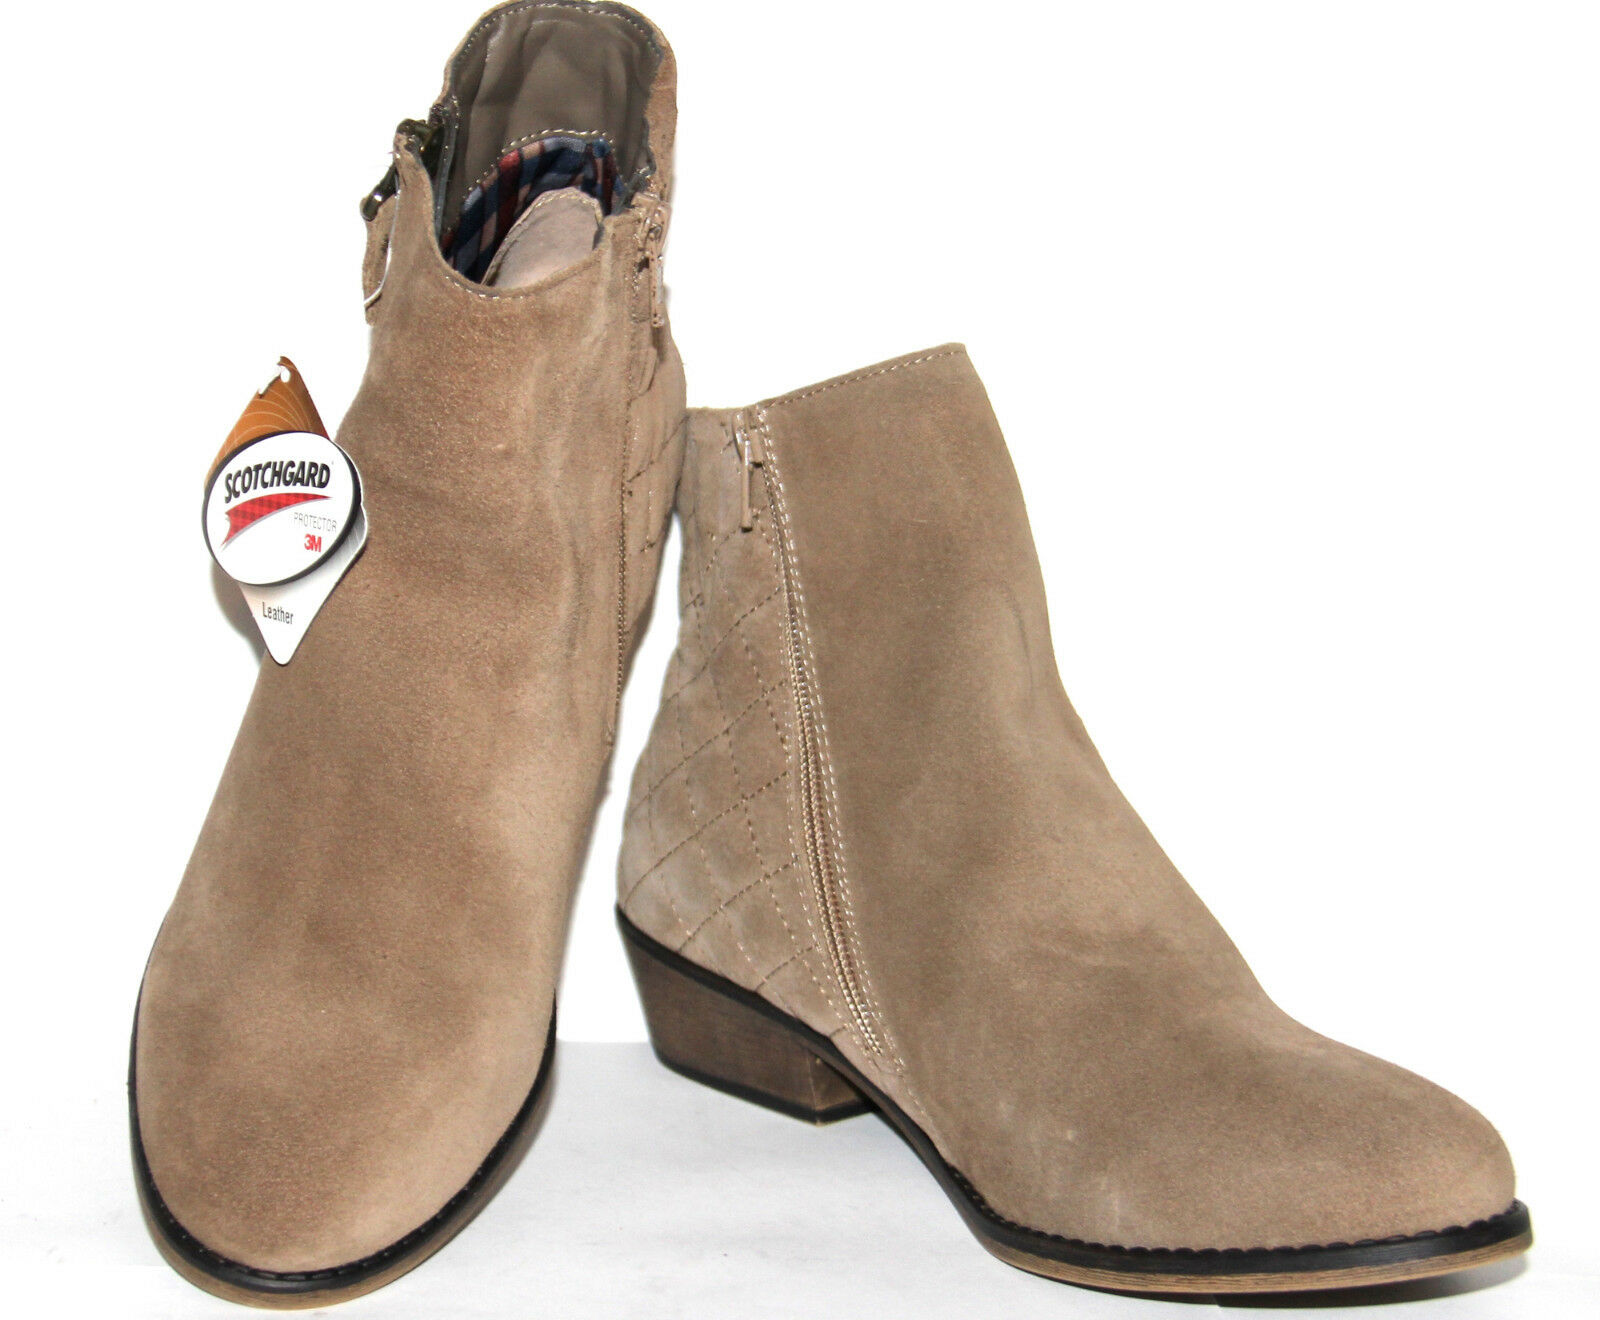 White Mountain 9.5W Water Resistant Suede Ankle Boots - Jodi TAUPE